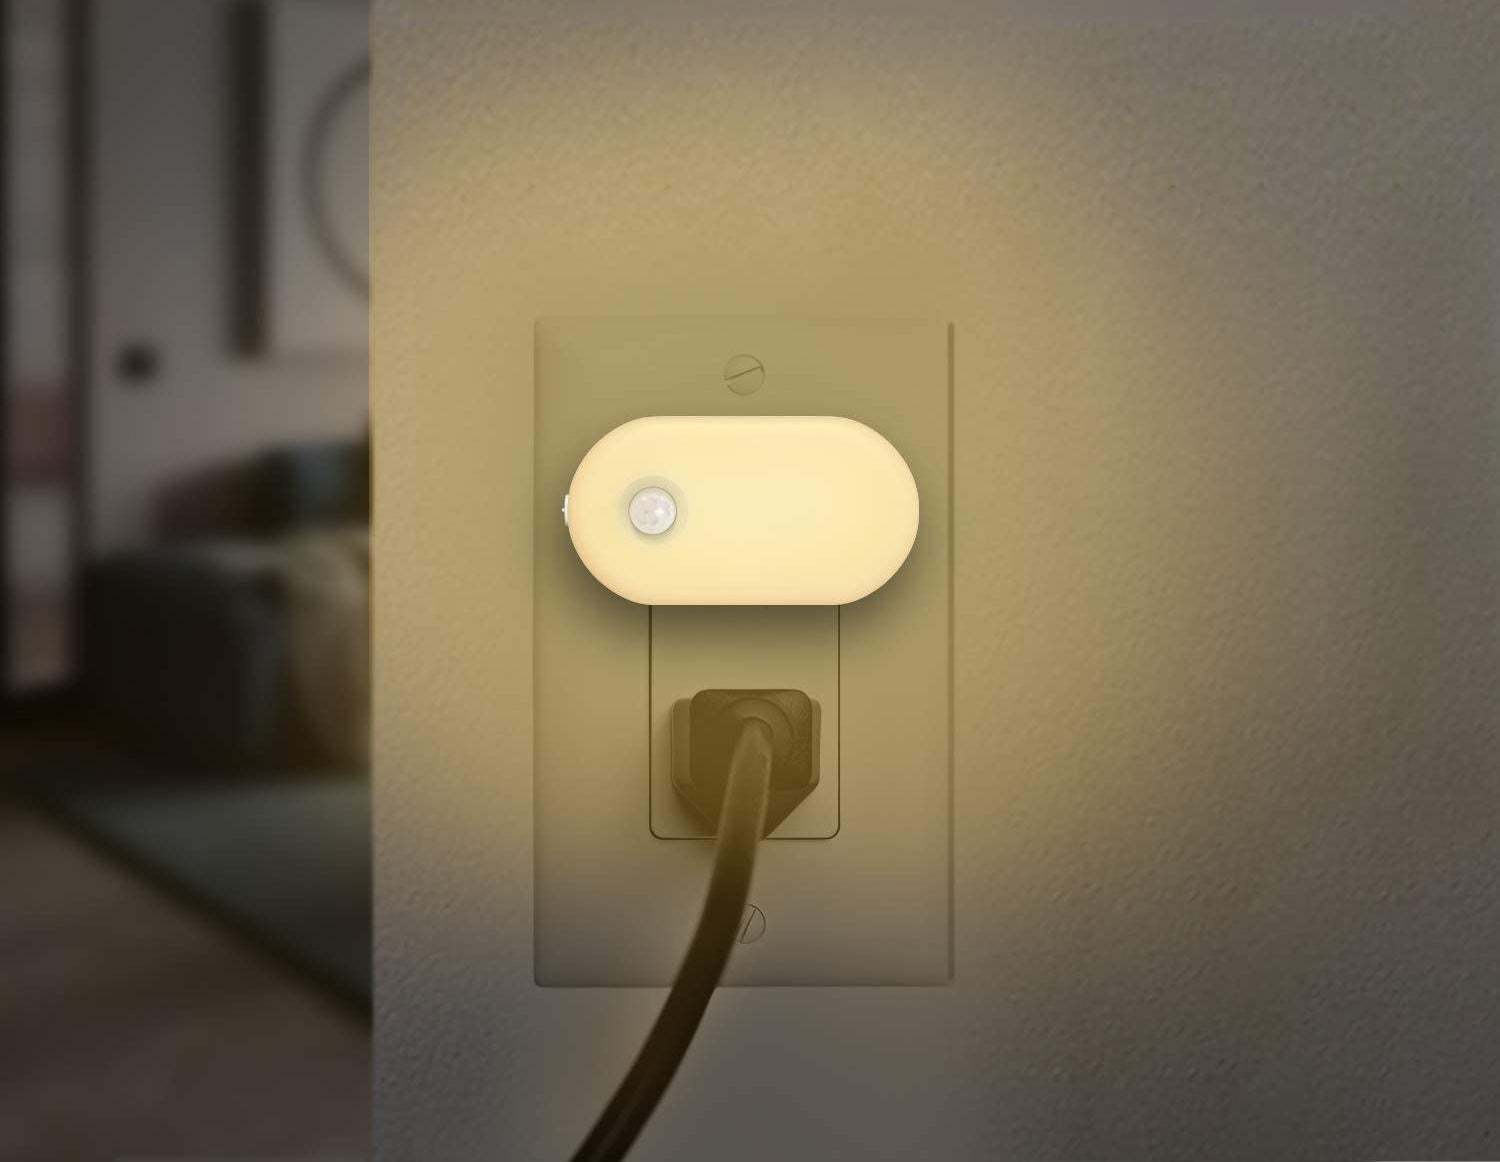 The motion sensor night light plugged into an AC outlet